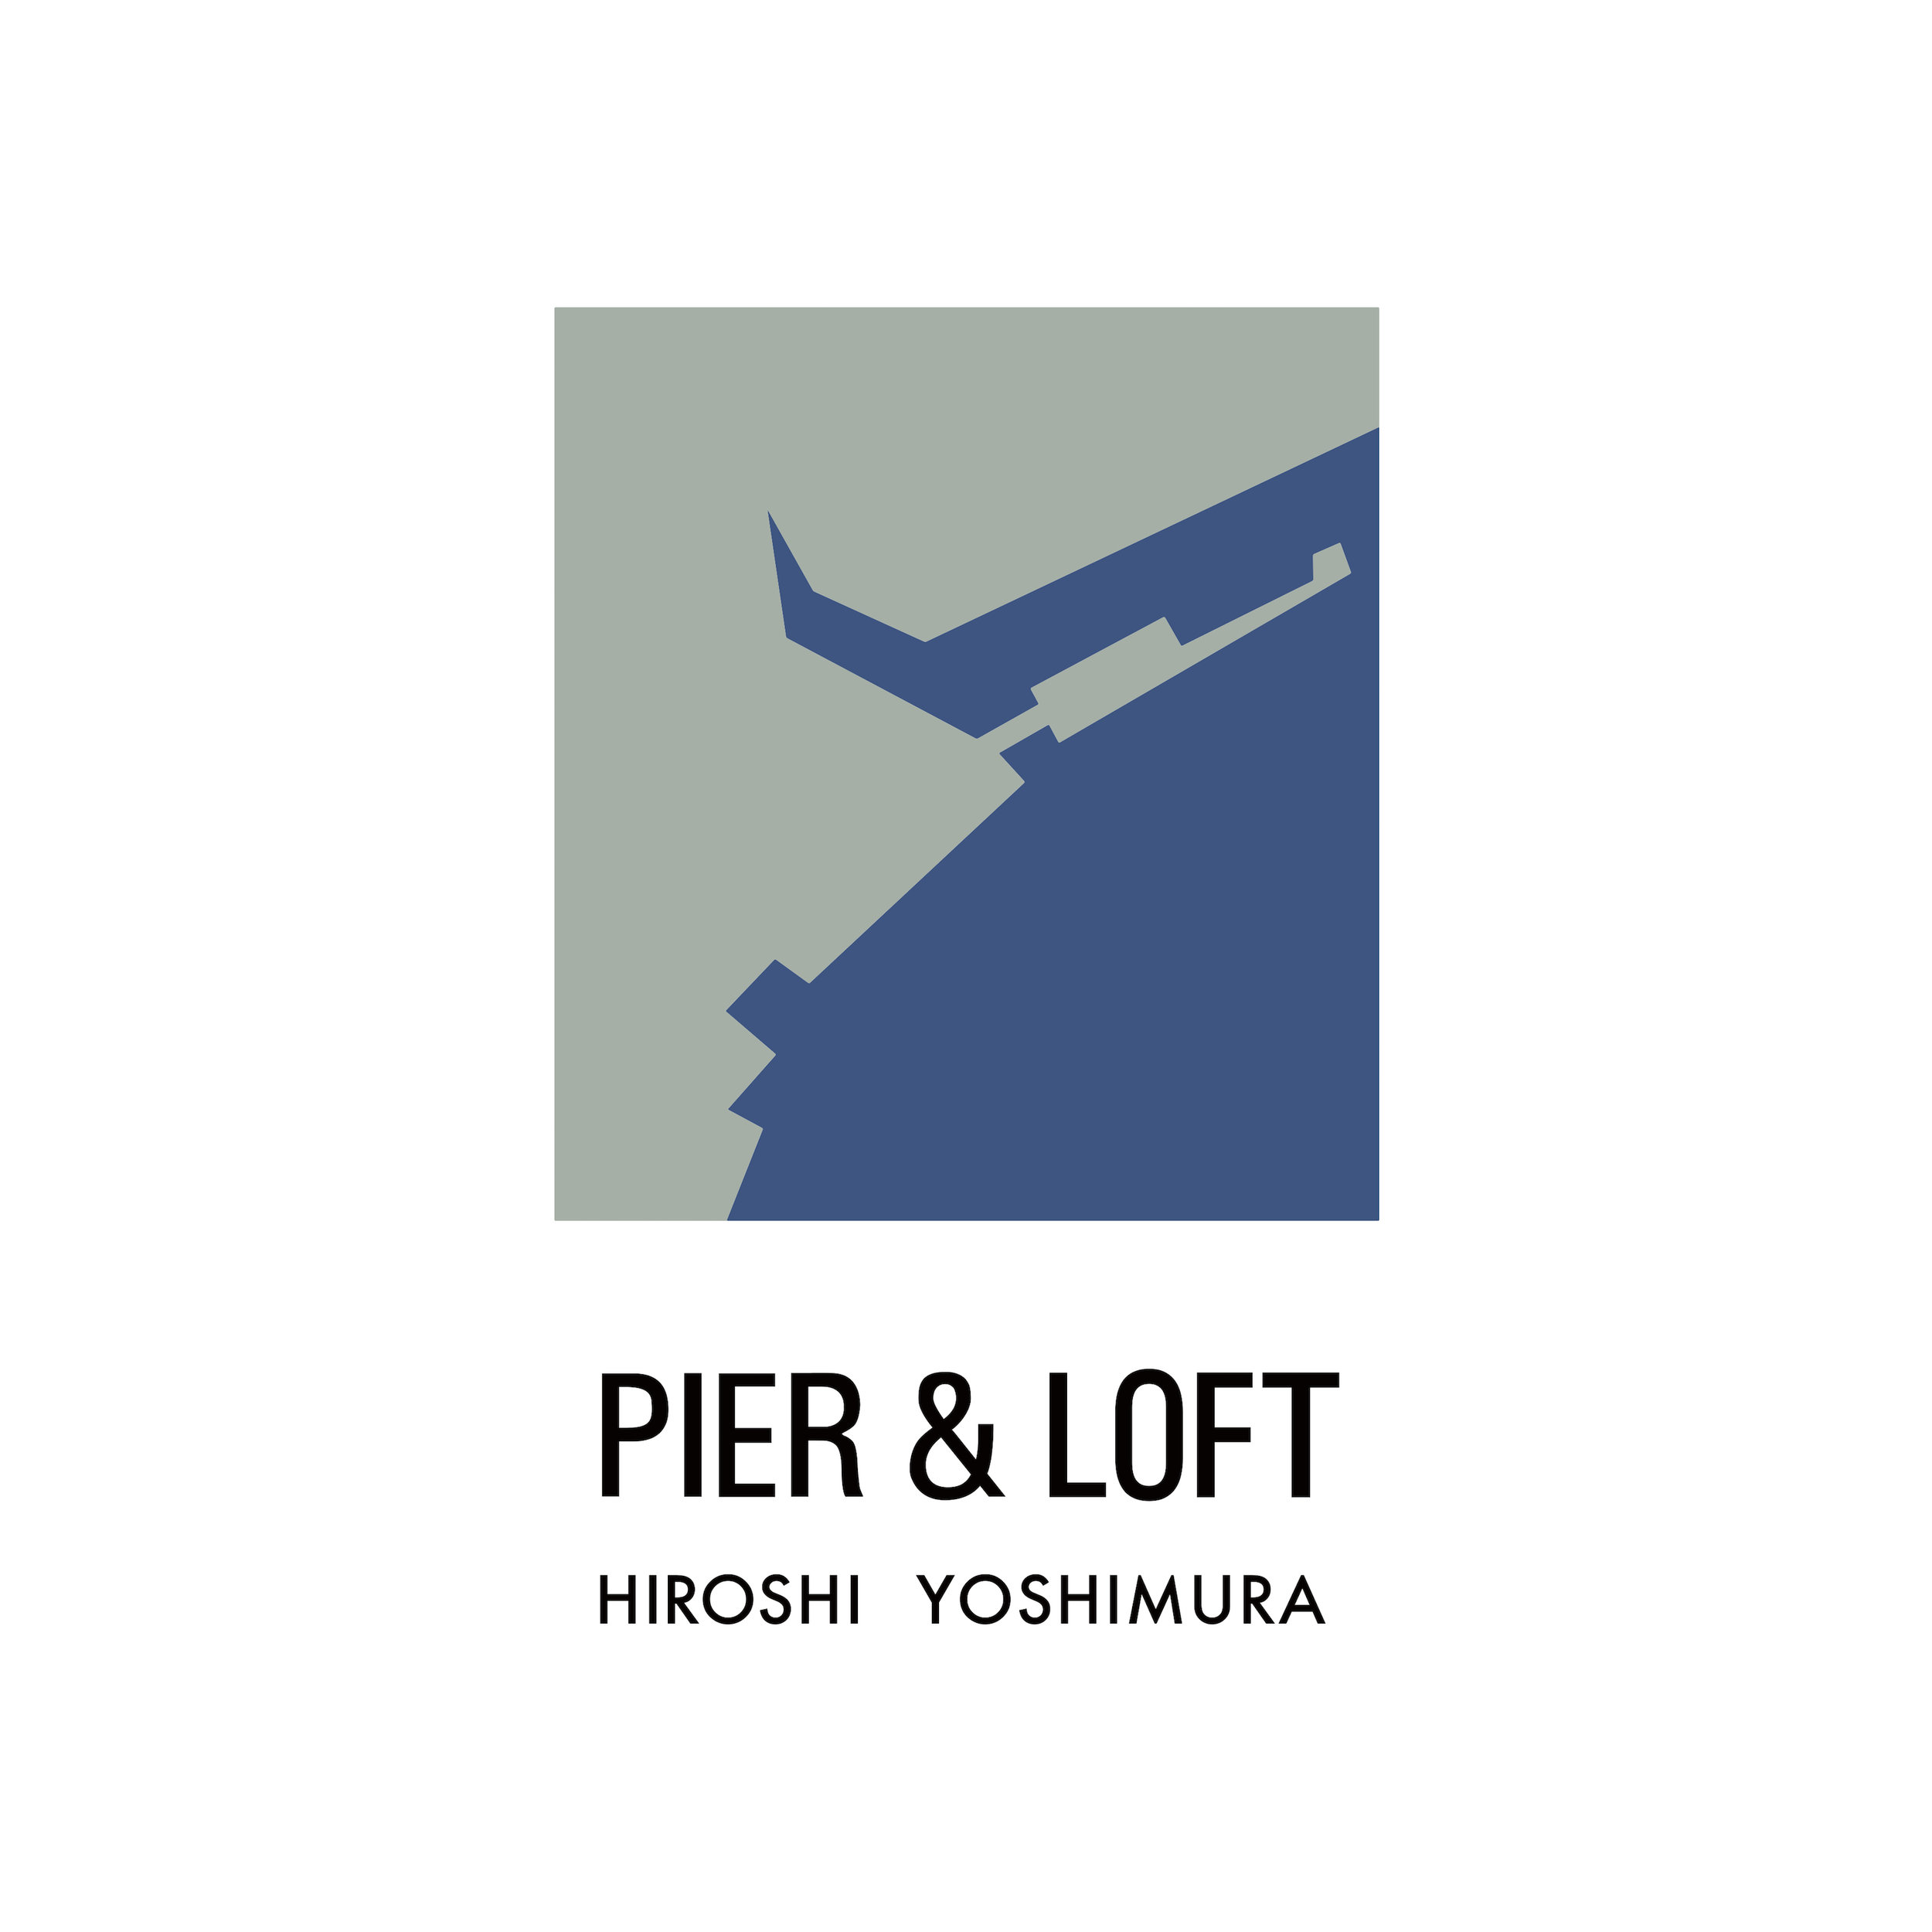 pier&loft